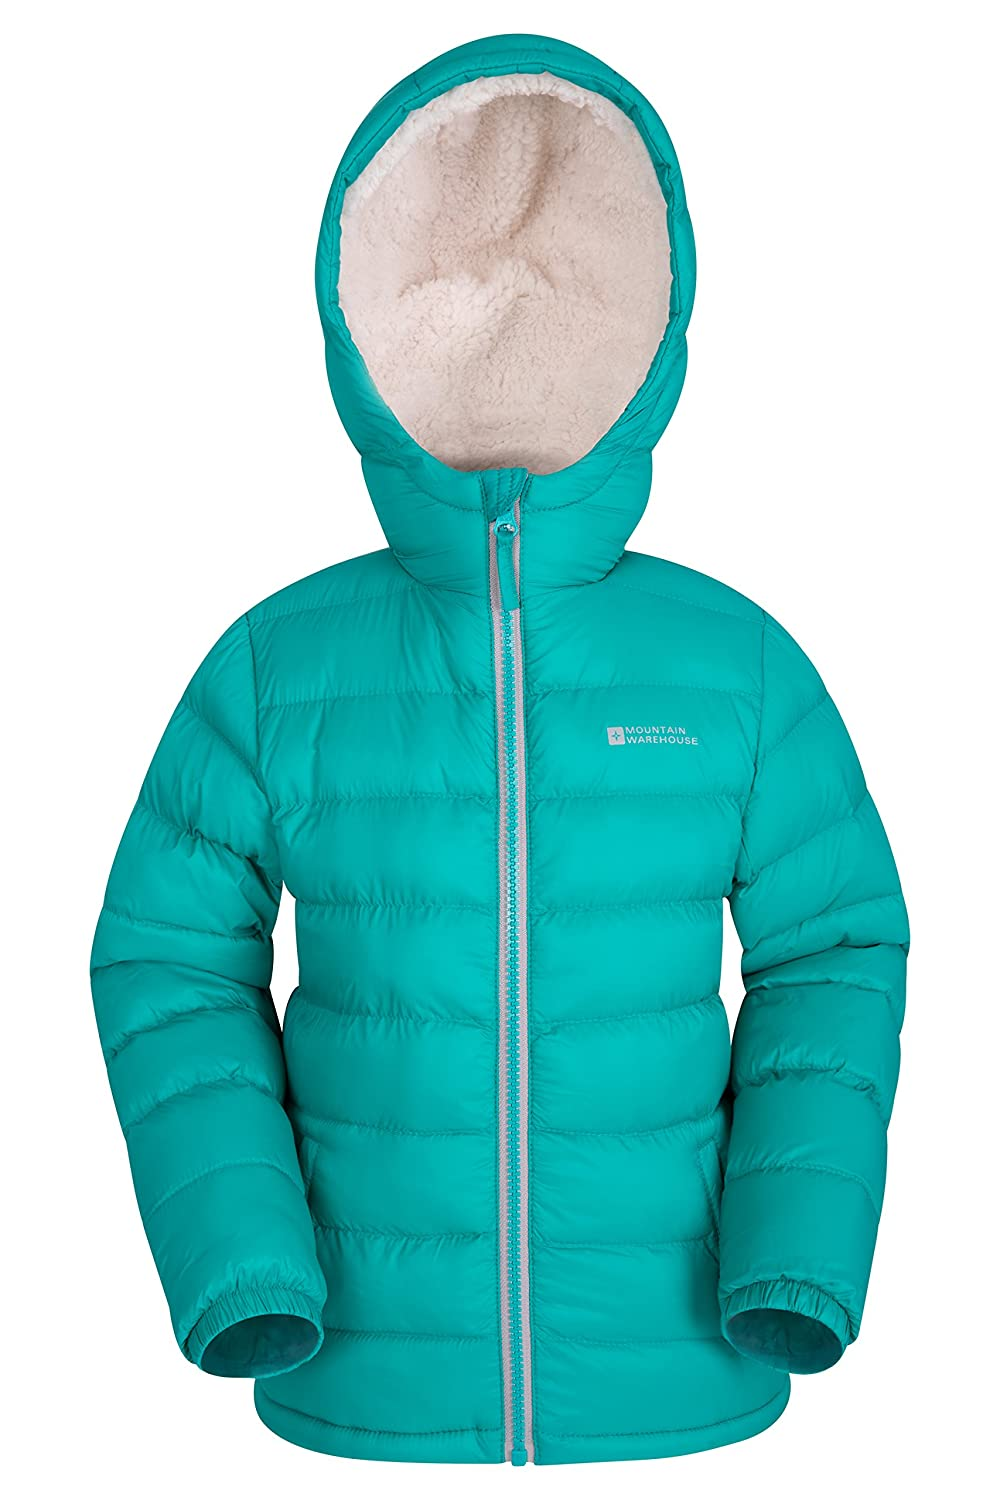 Mountain Warehouse Snowflake Girls Sherpa Lined Jacket